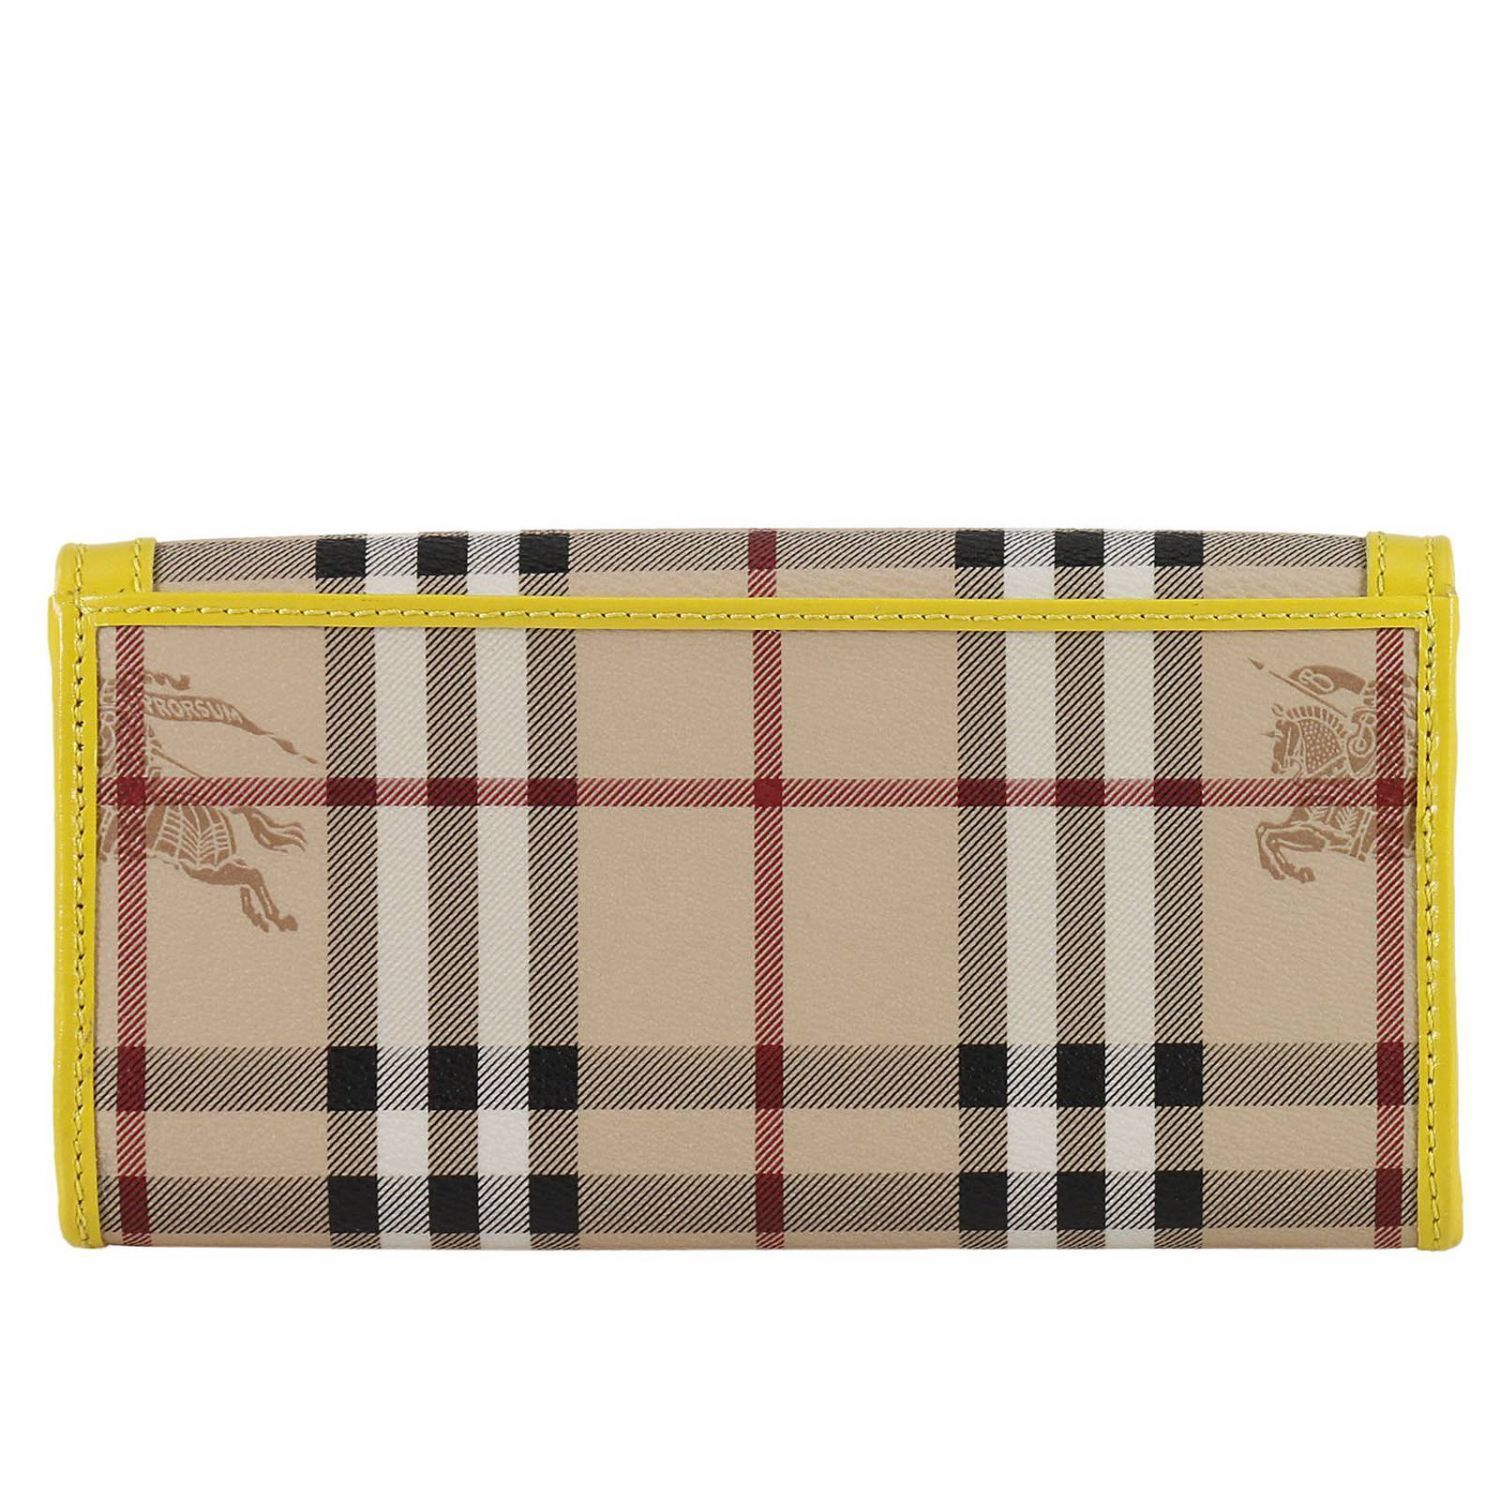 送料込 Wallet Wallet Women Burberry 財布